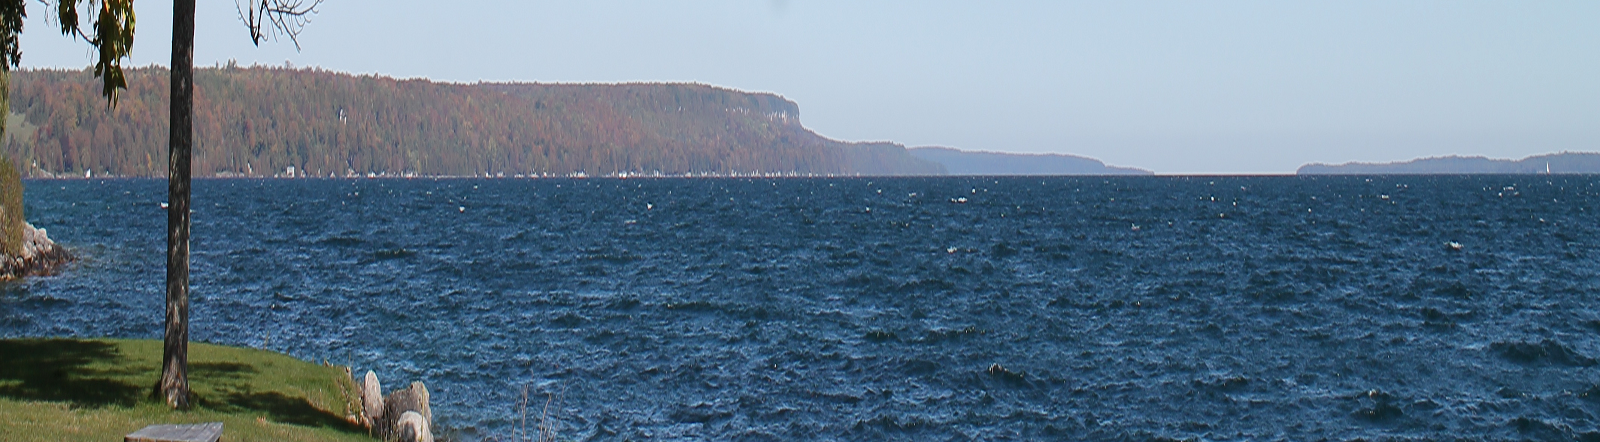 Photo of Wiarton waterfront